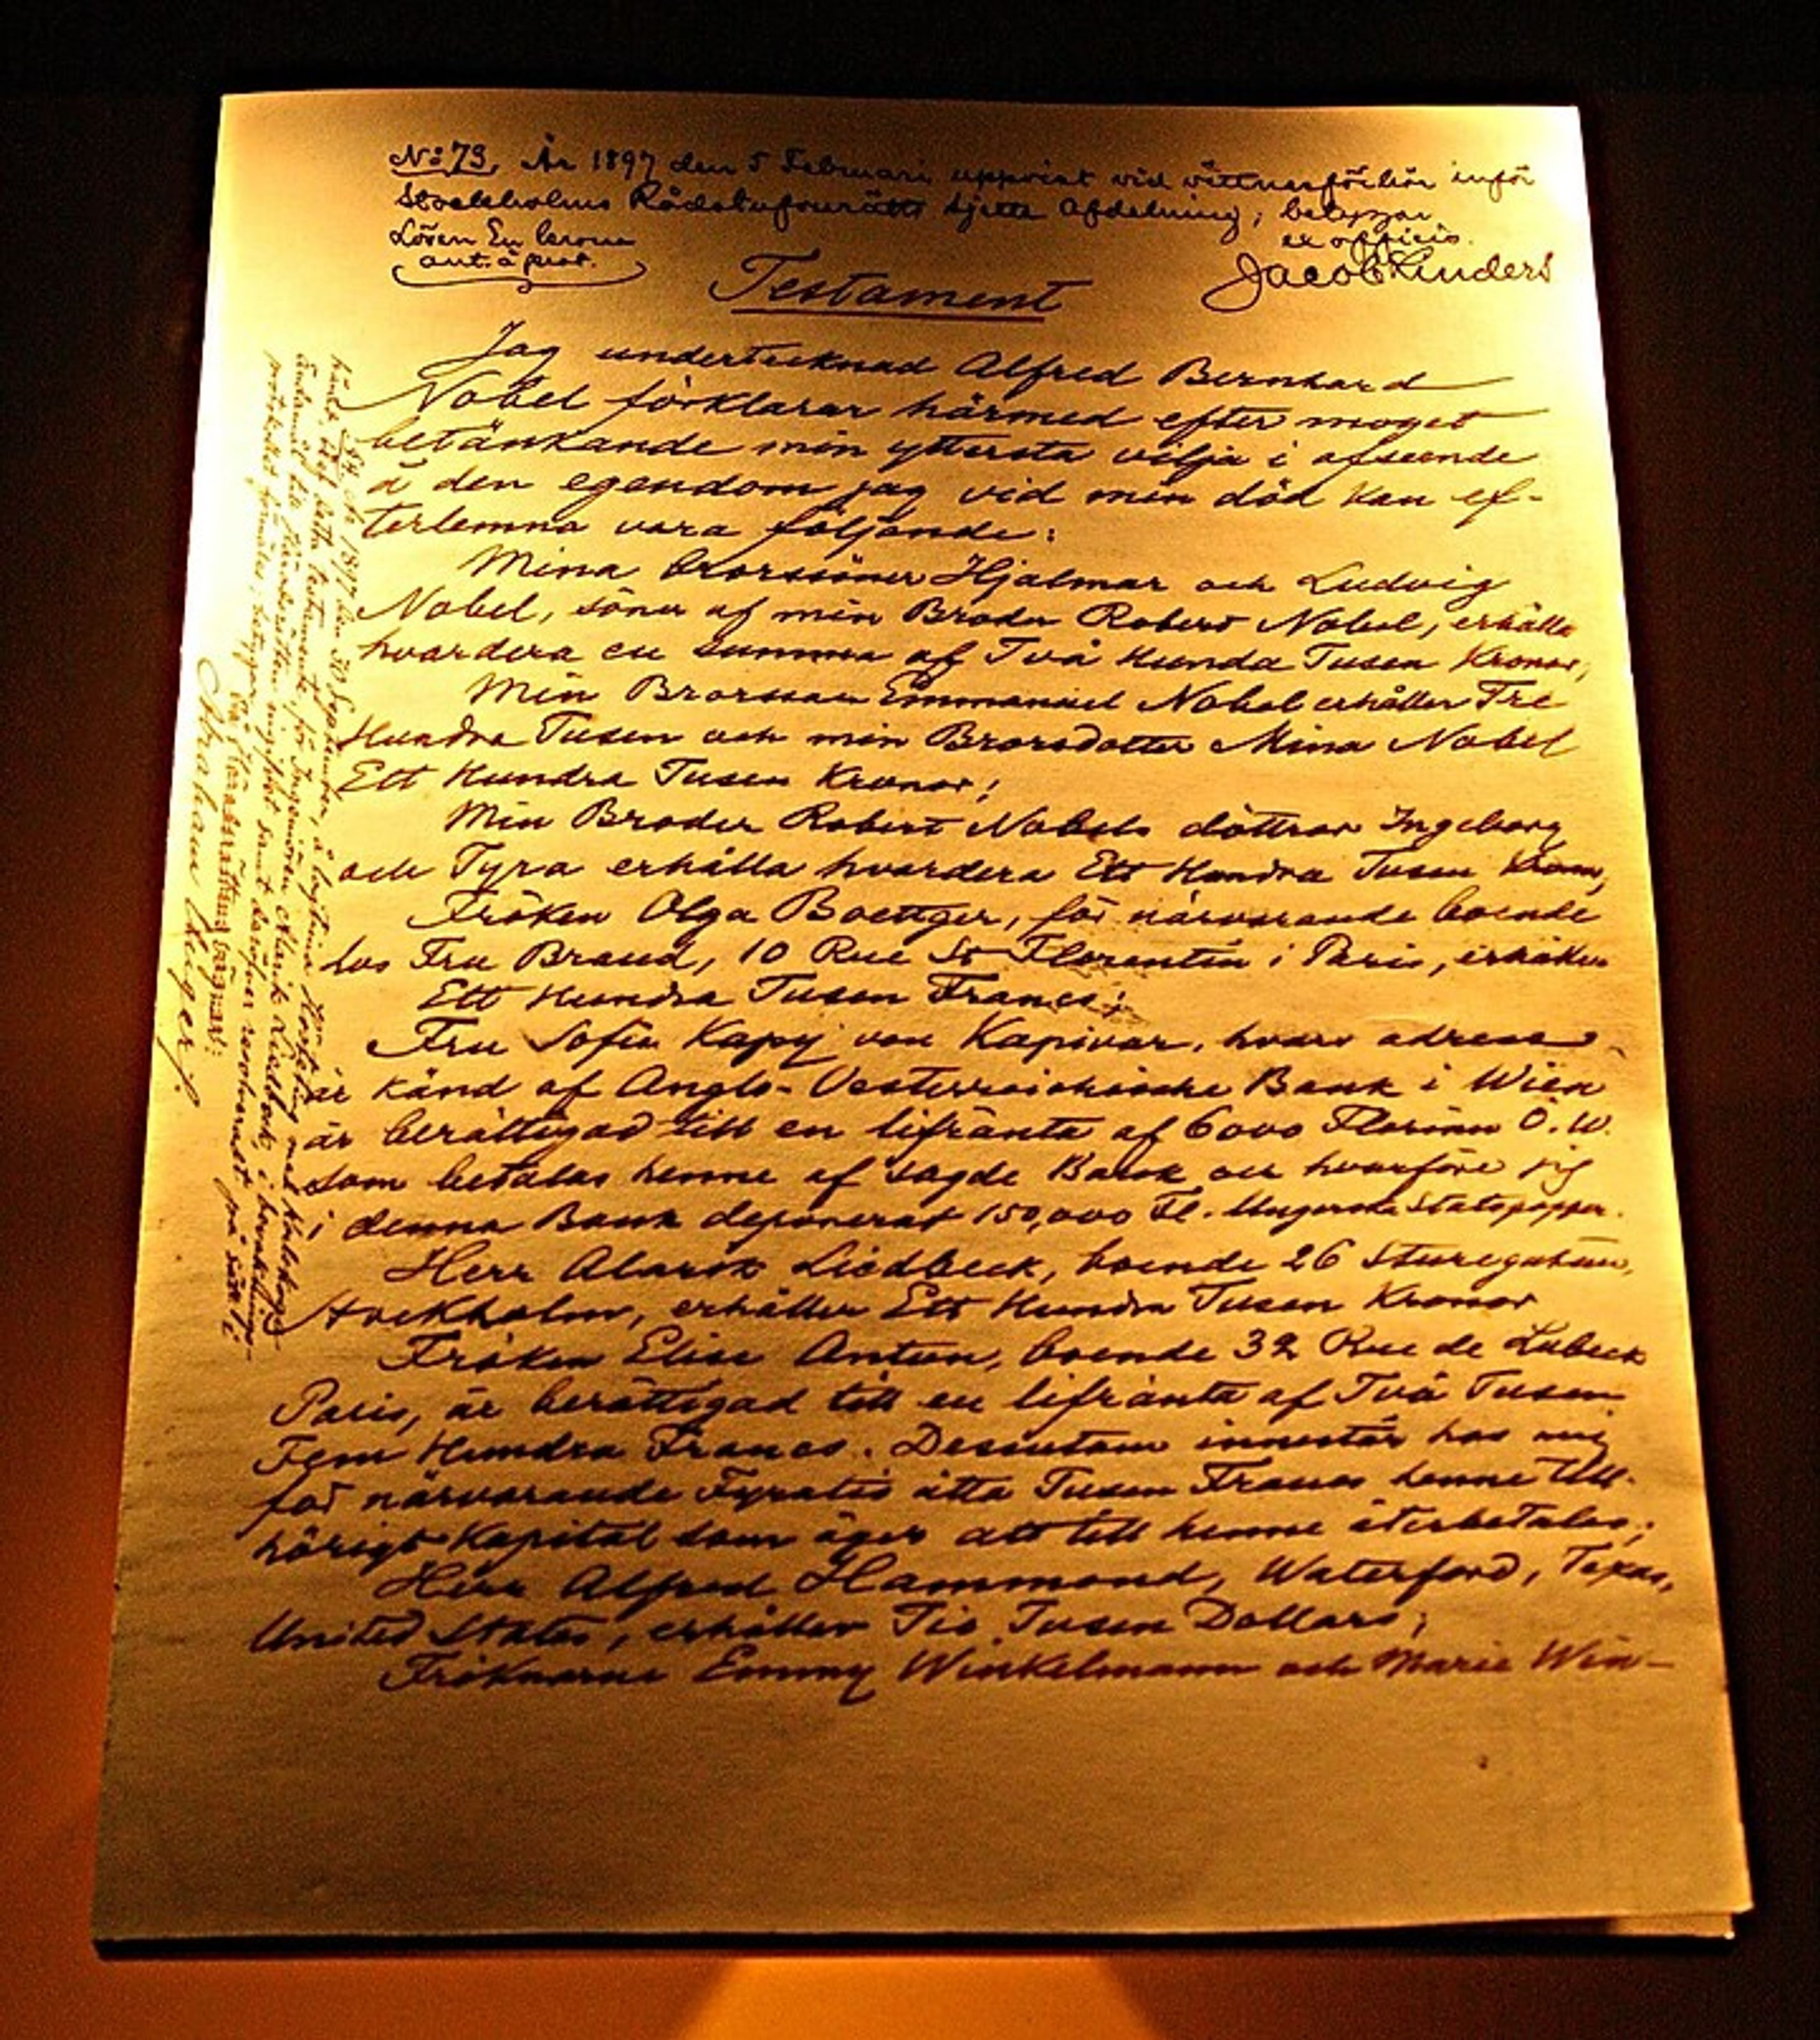 Alfred Nobel's will and testament